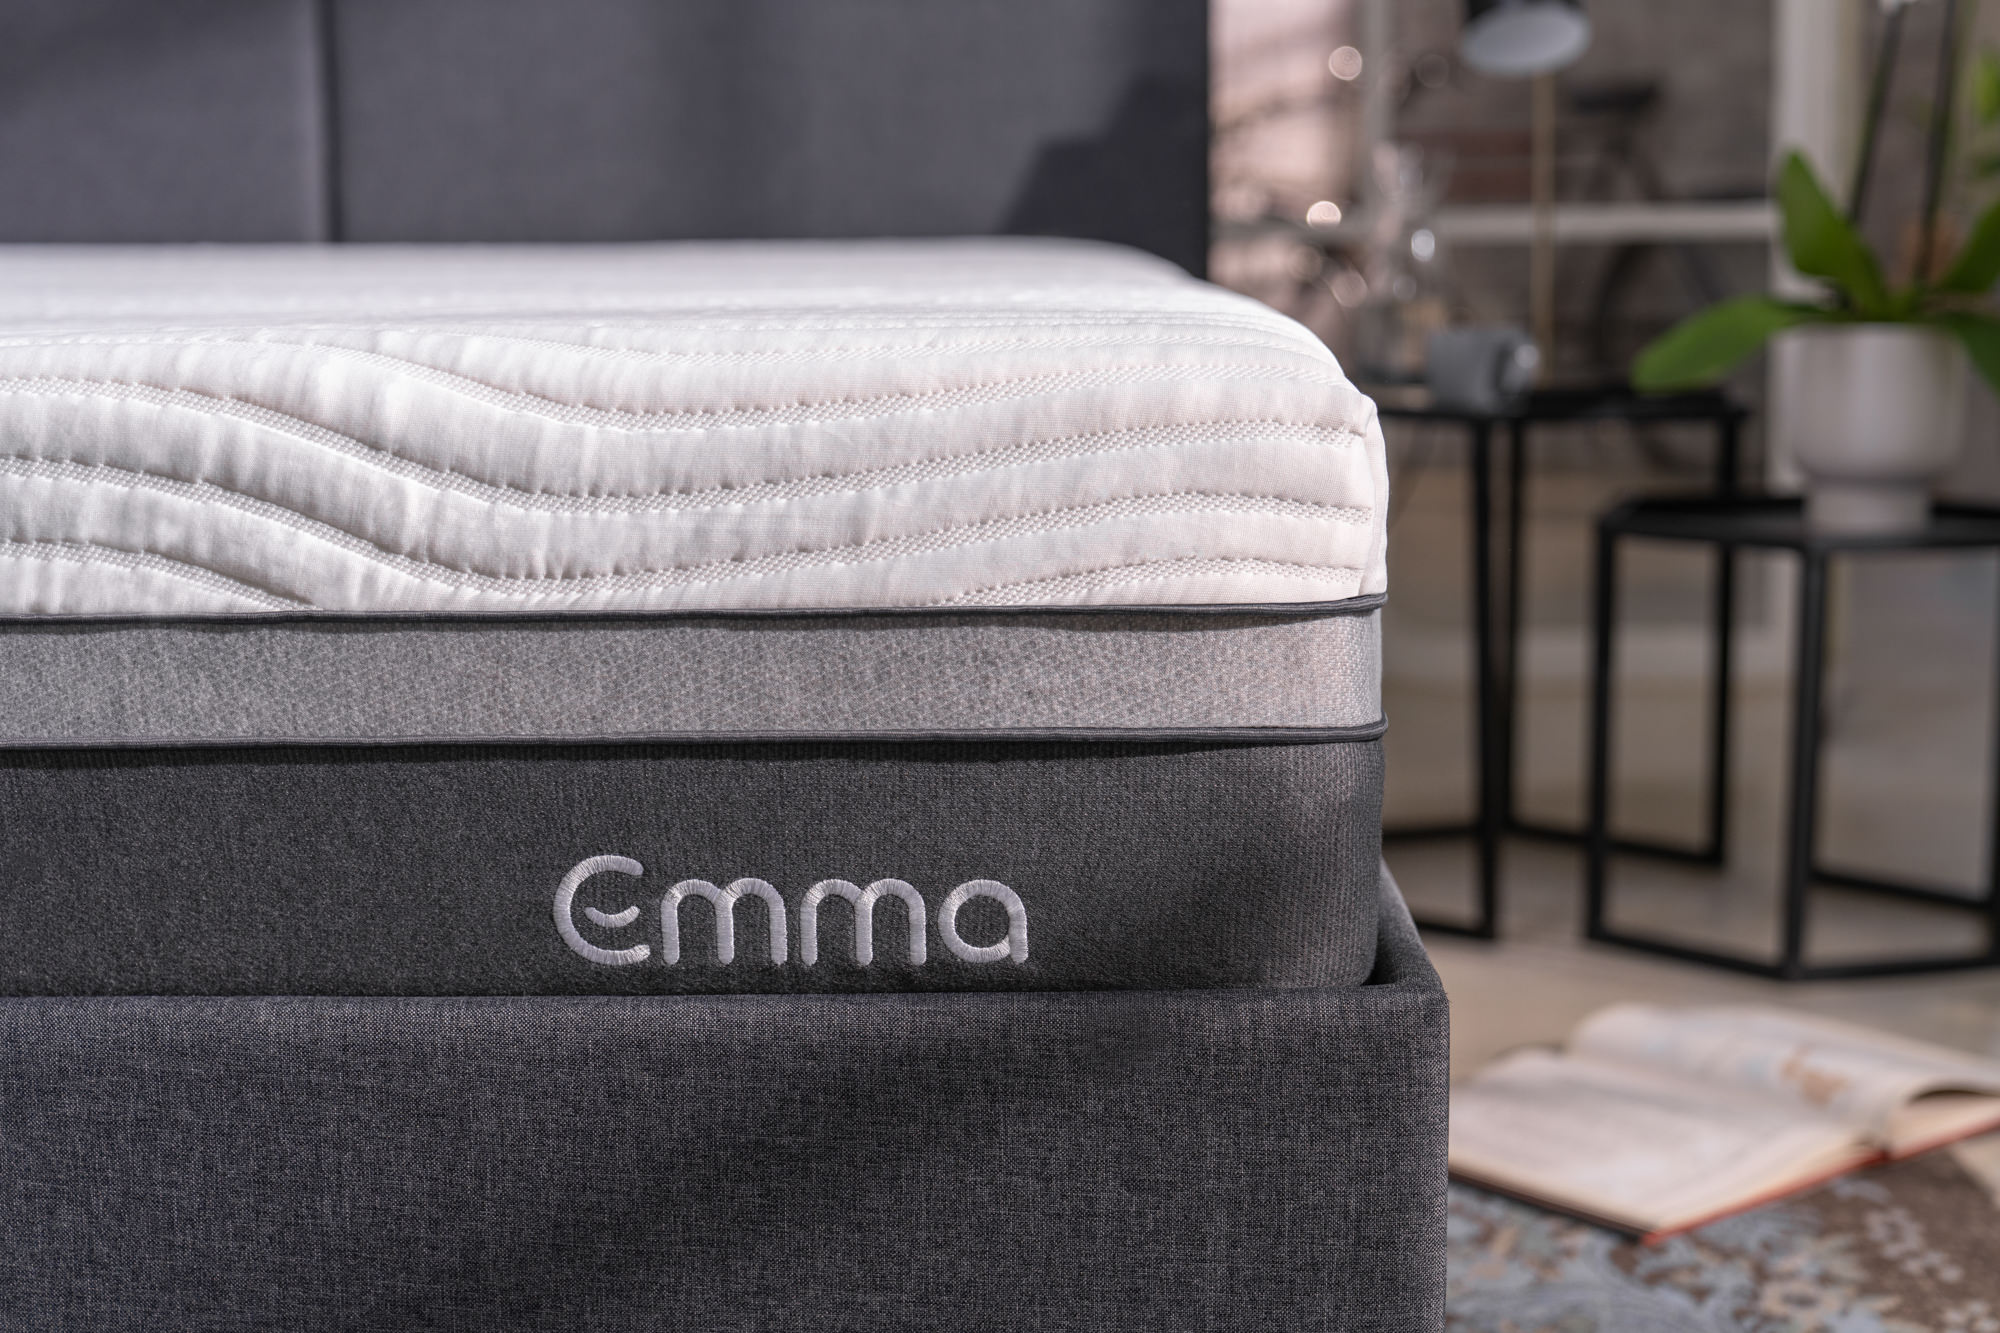 Image of an Emma mattress for the Emma Matratze Content Library.